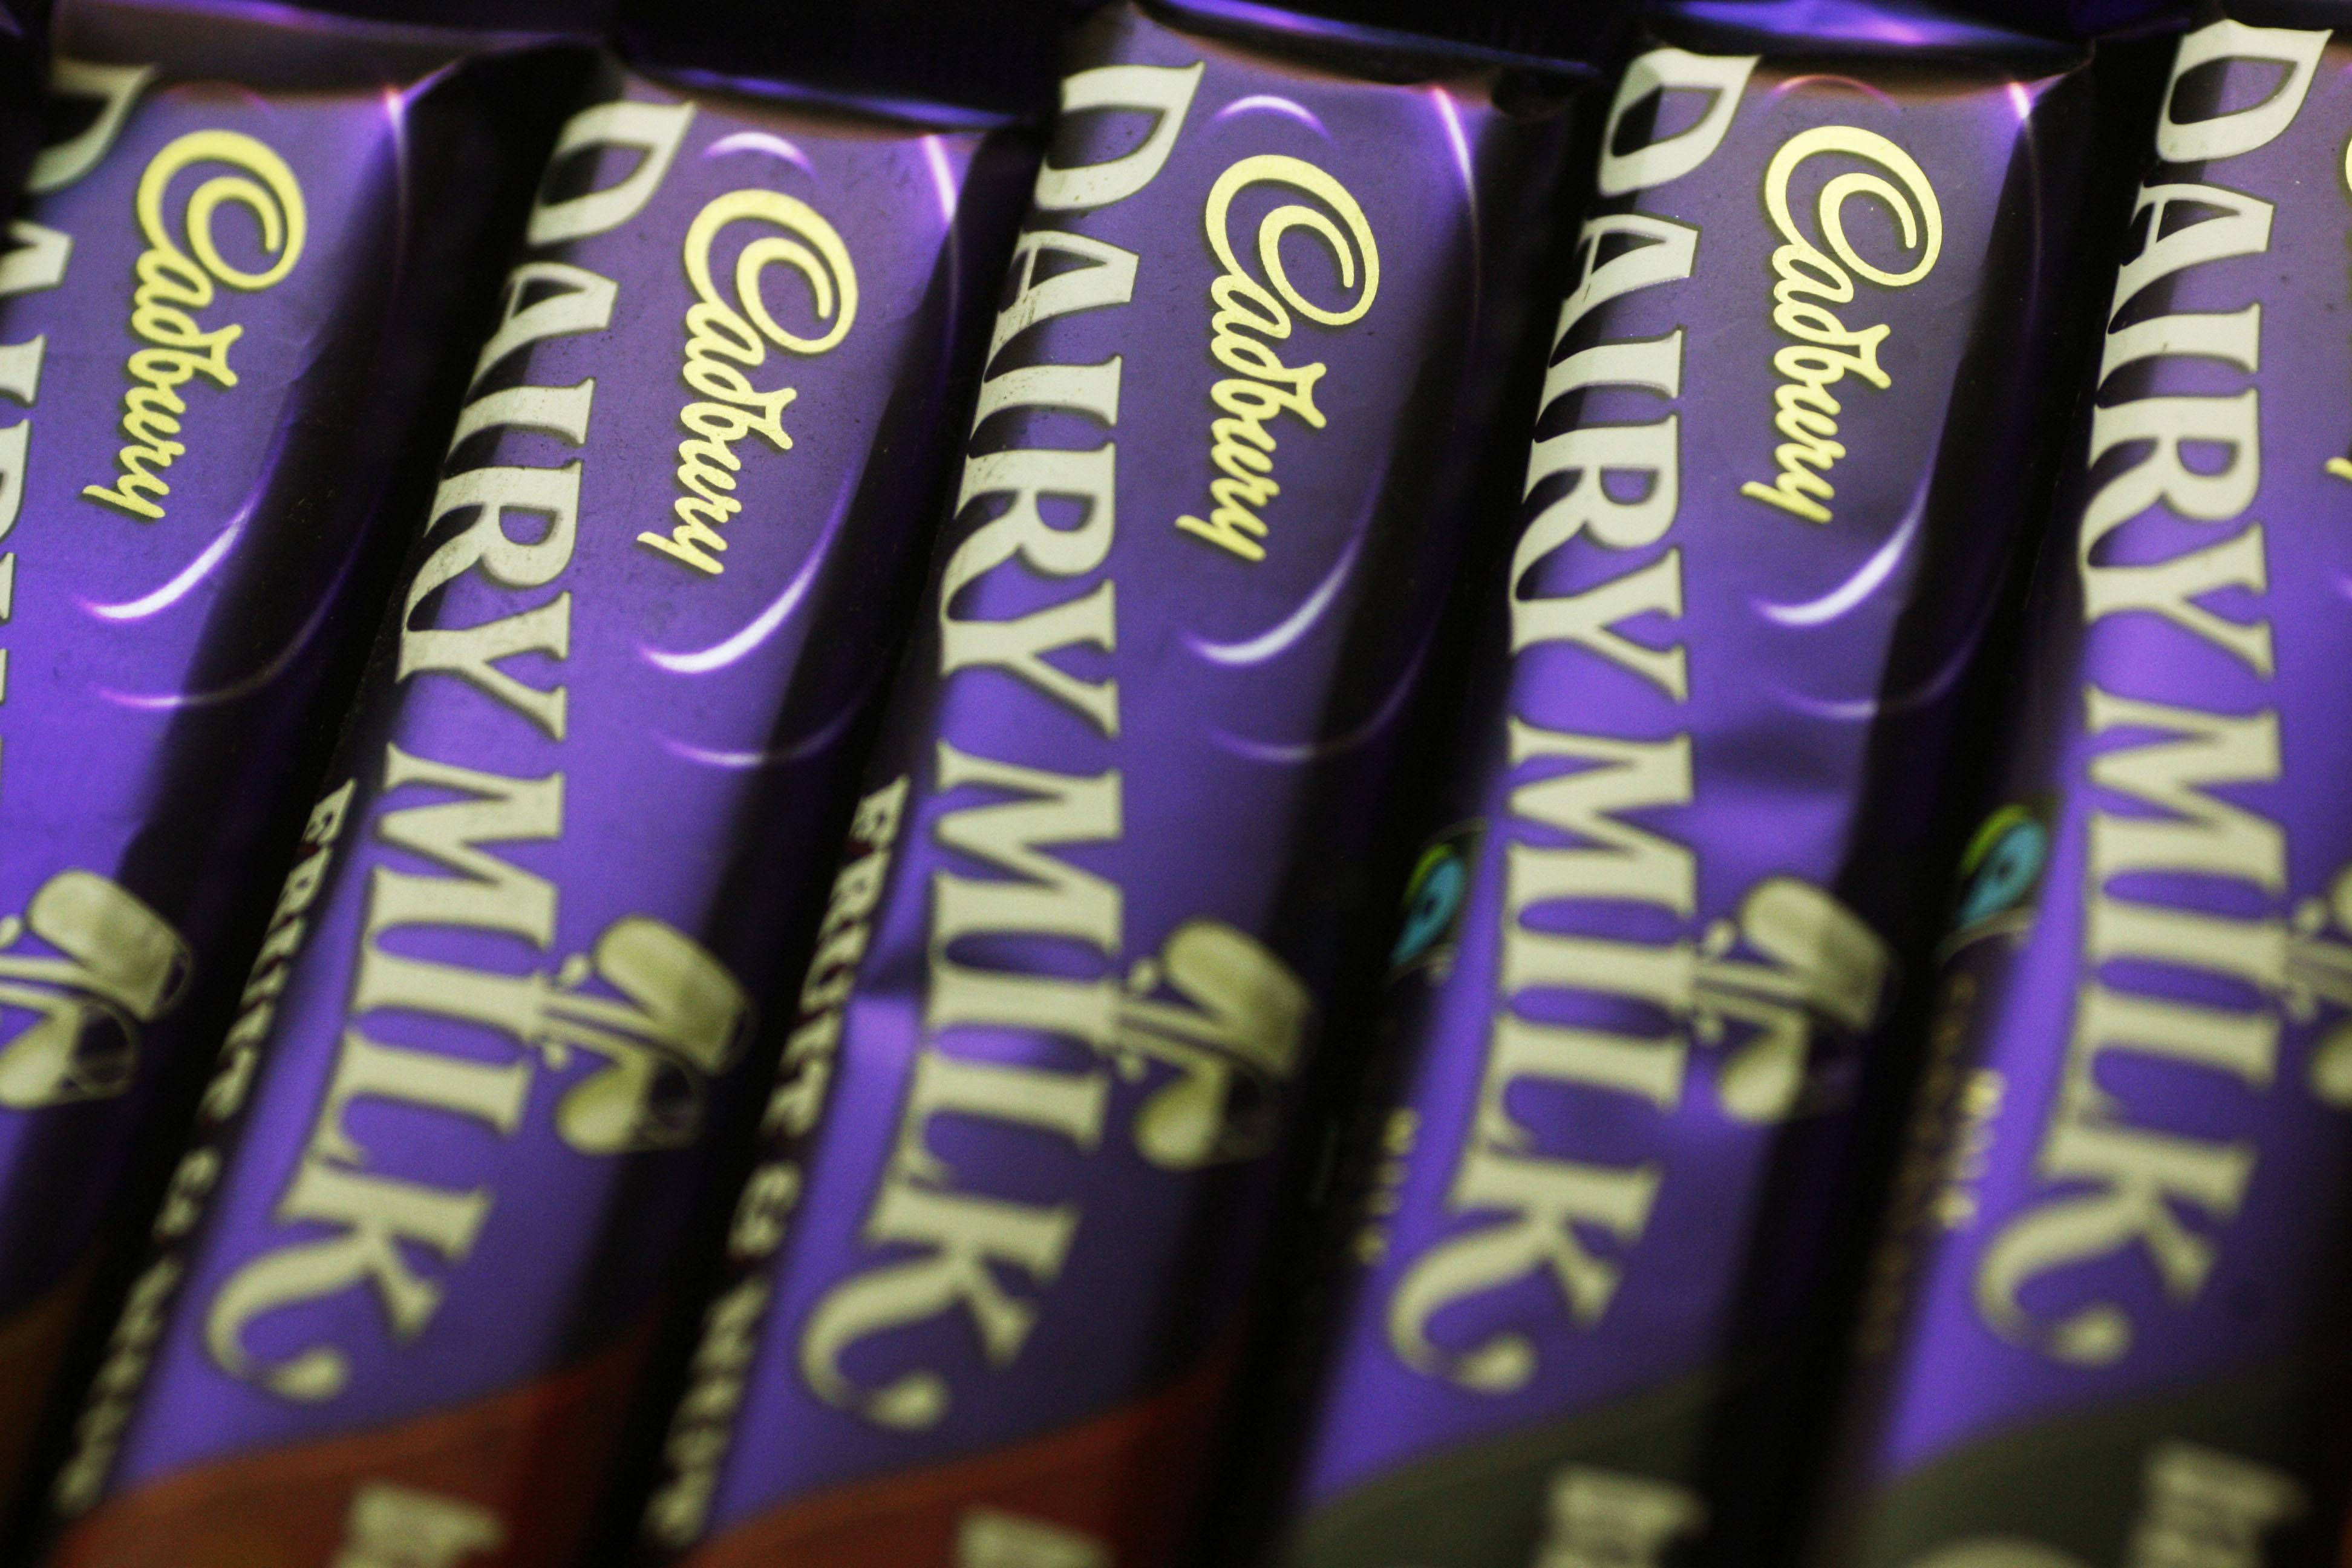 Mondelez International Inc. reported quarterly sales Wednesday that fell short of Wall Street expectations. The Deerfield-based company also trimmed its sales forecast for the year.